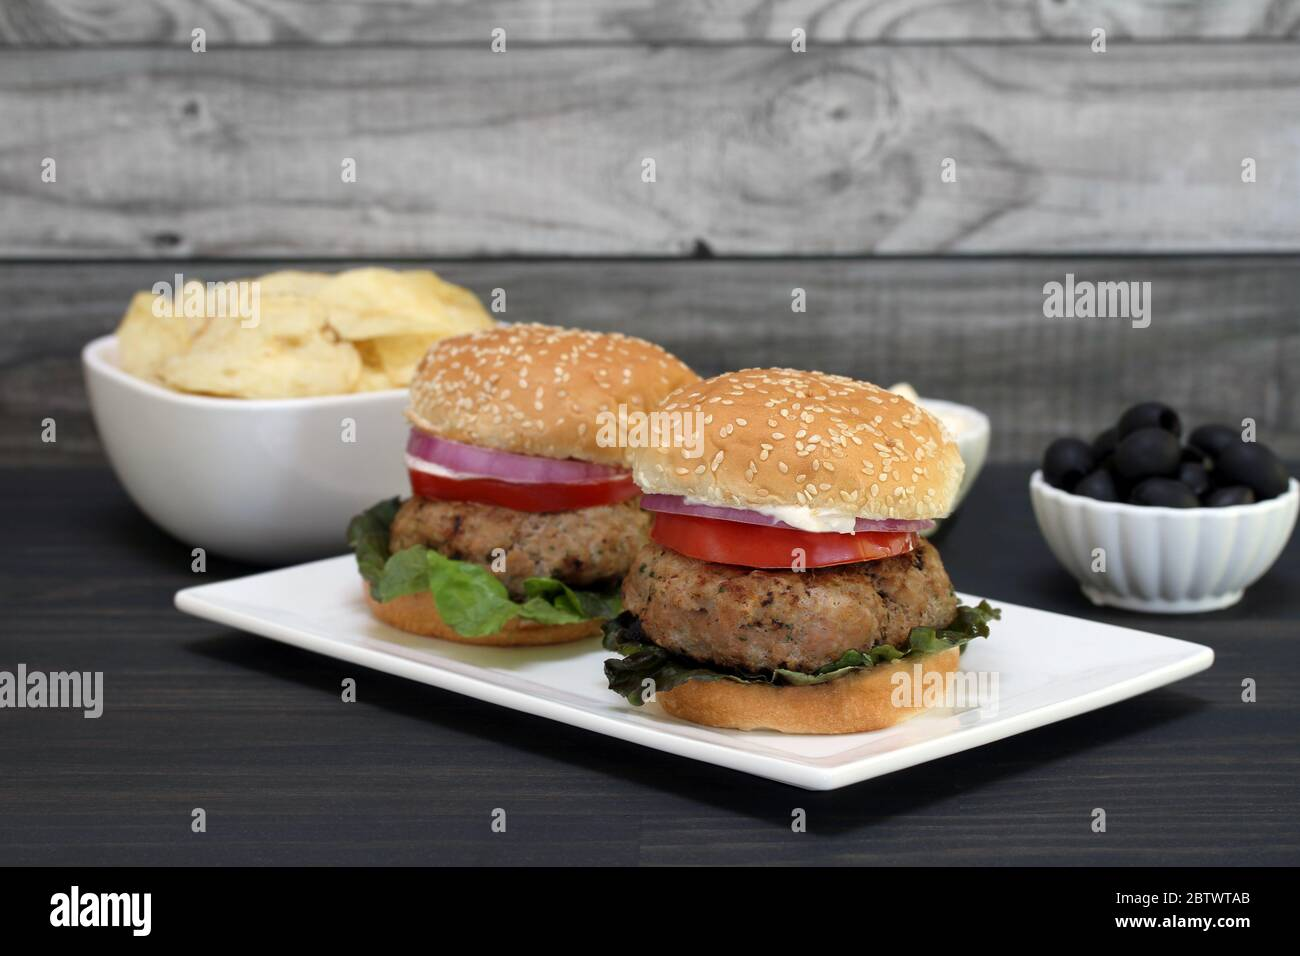 Two Healthy Turkey Burgers On A Rectangular Platter Burgers Are Garnished With Red Leaf Lettuce Onion And Sauce Selective Focus On Front Burger Stock Photo Alamy